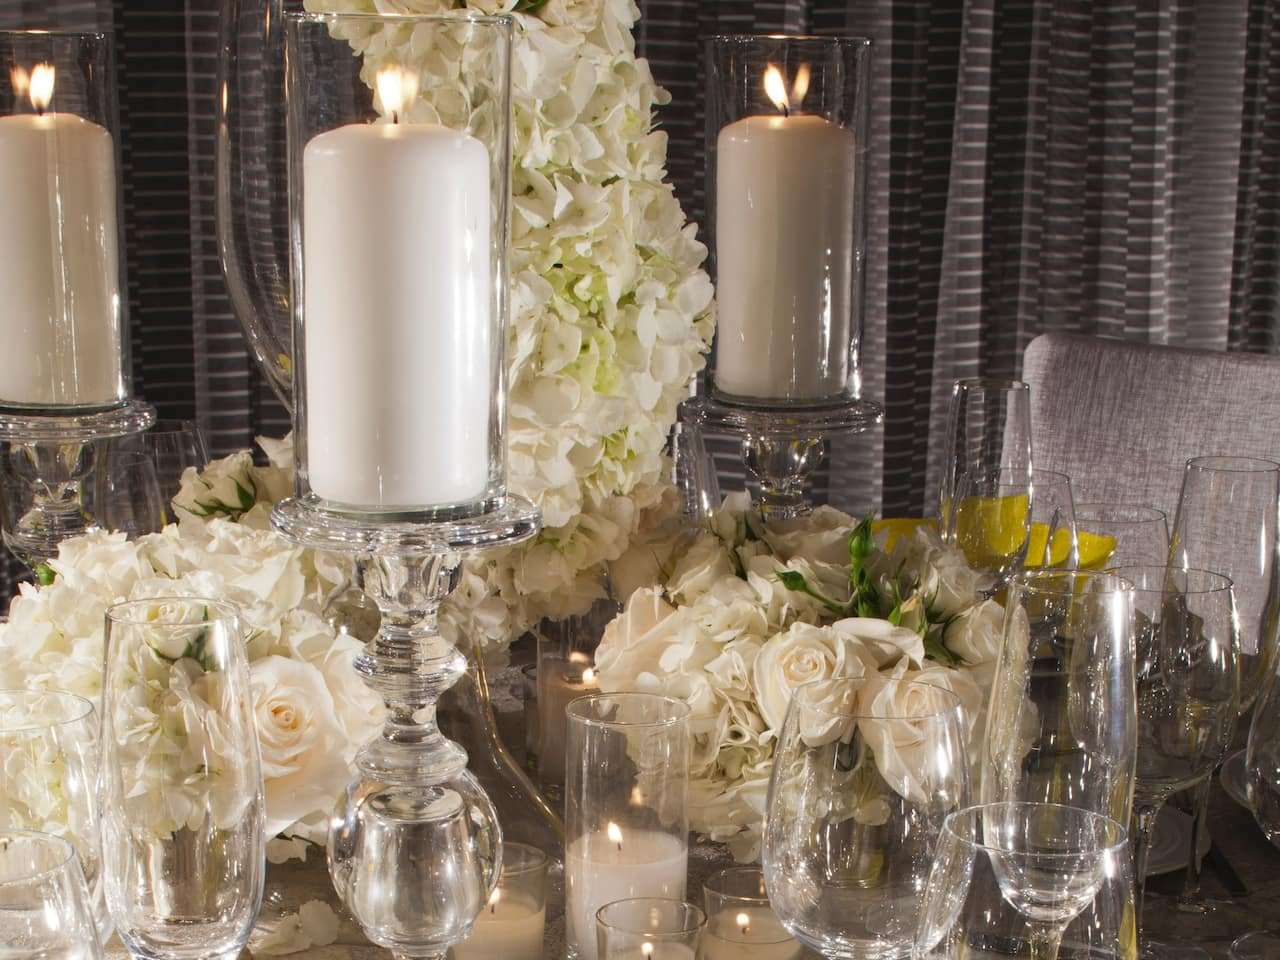 Candles and flowers for wedding decorations Hyatt Regency Los Angeles International Airport